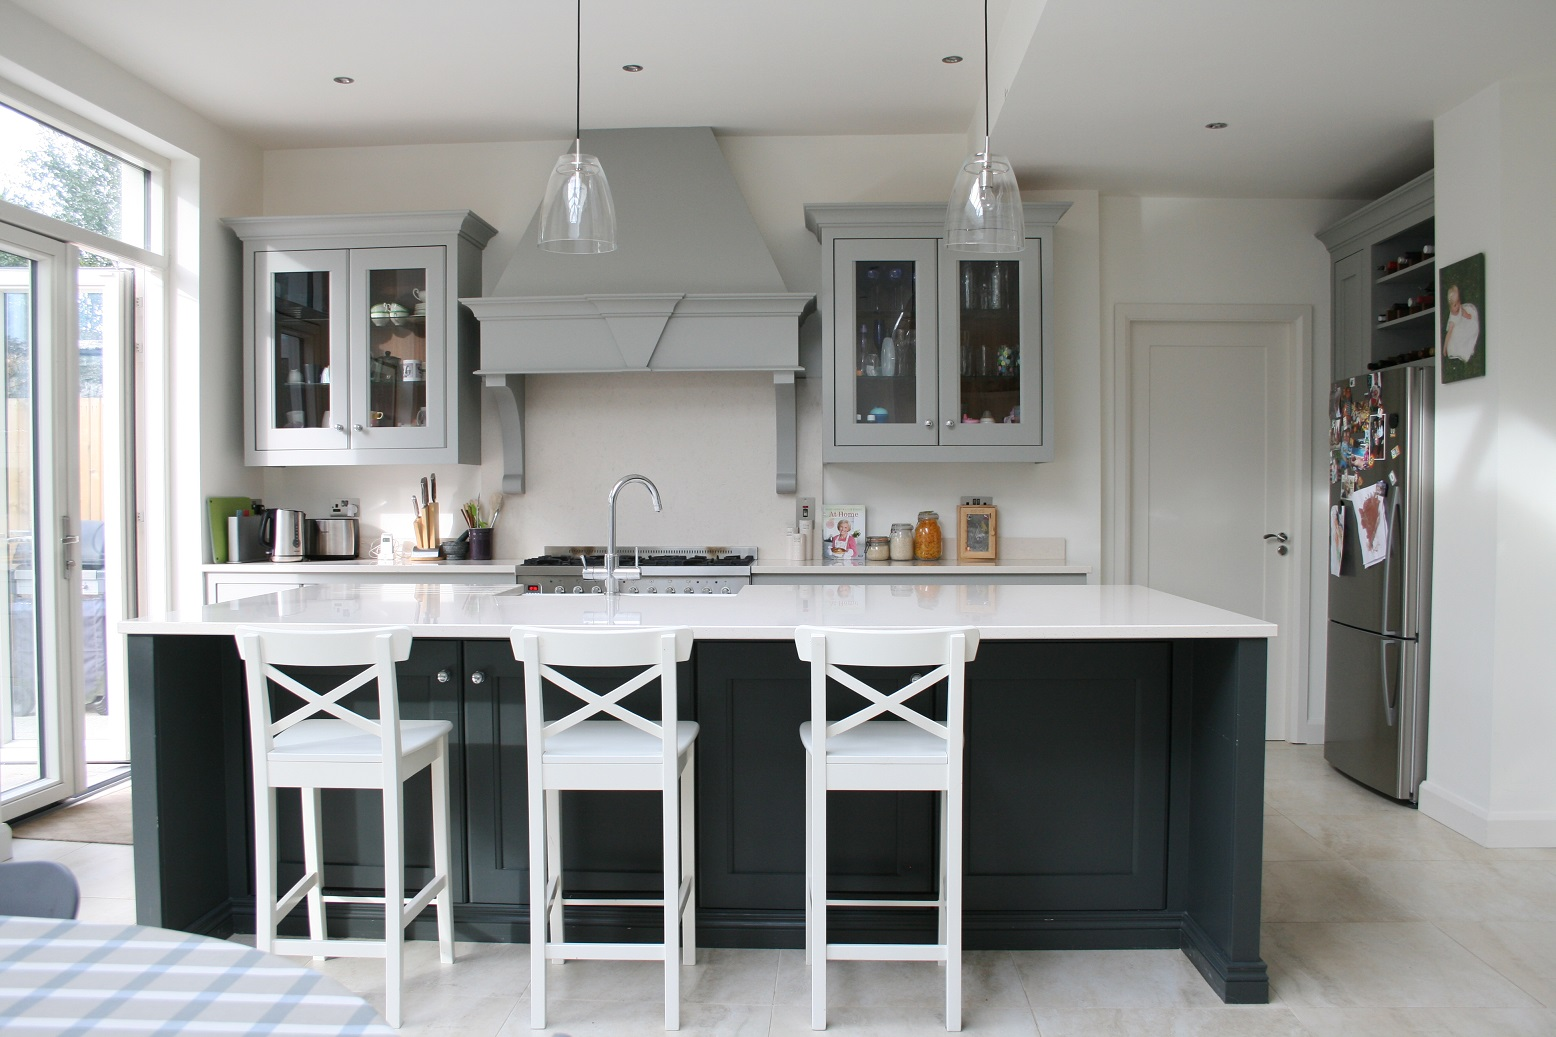 Bespoke Kitchen Design Painting kitchen ideas ireland  interior design